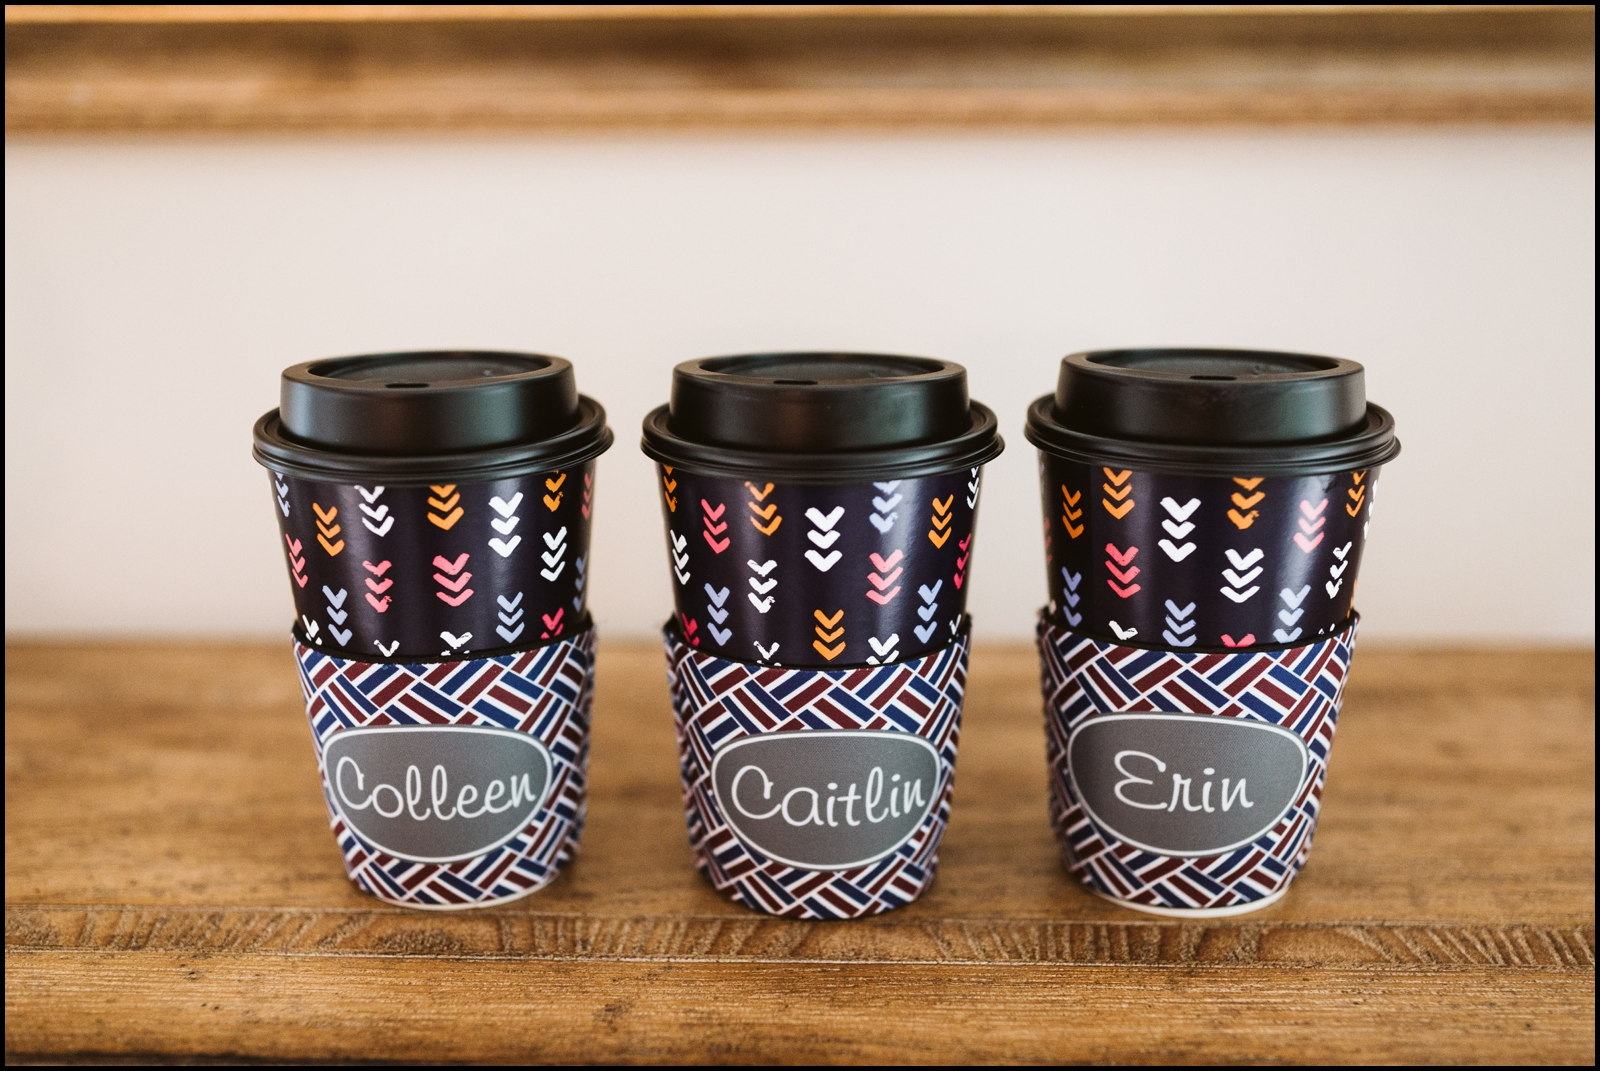 Coffee comes for the bridesmaids